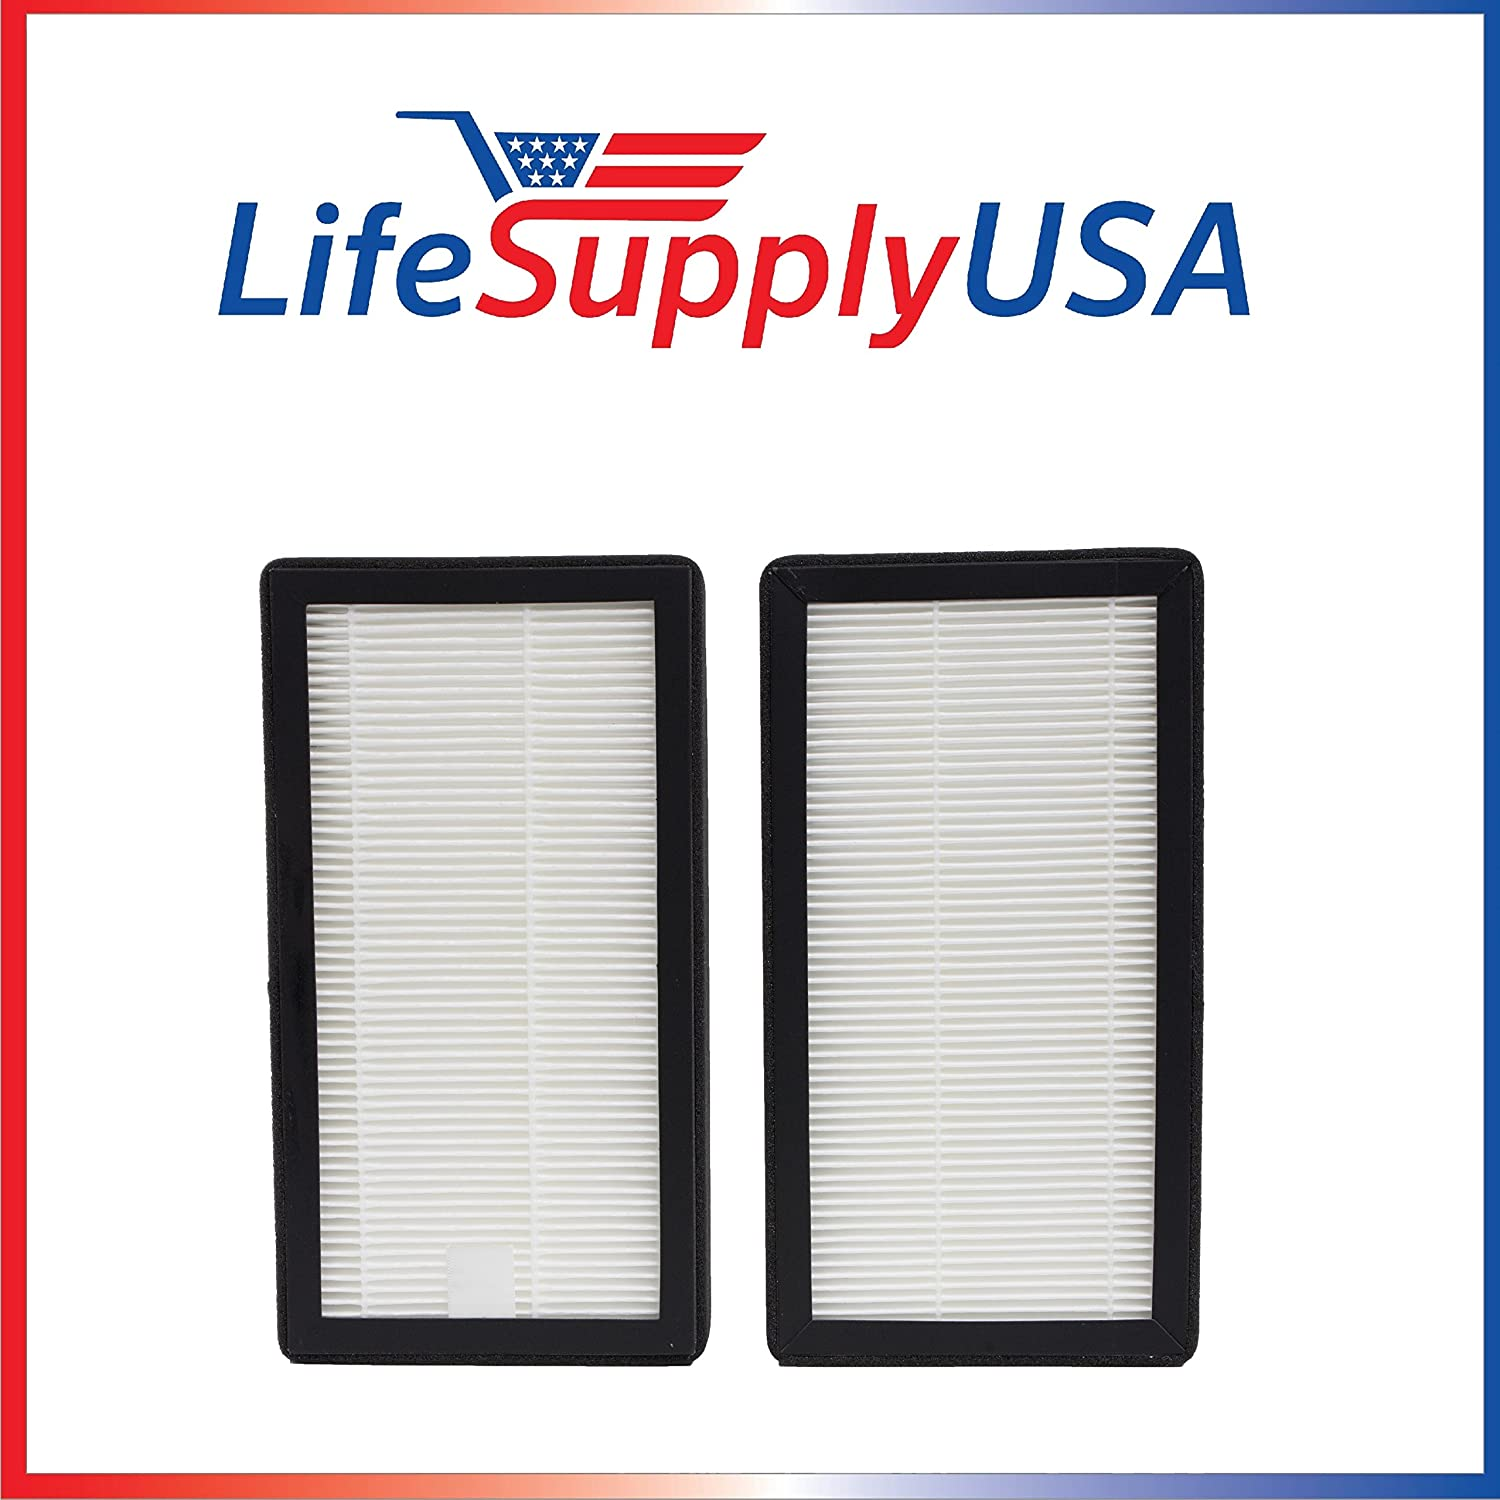 LifeSupplyUSA 2 Pack HEPA Filter Compatible with Coway-USA Model AP-0510IH